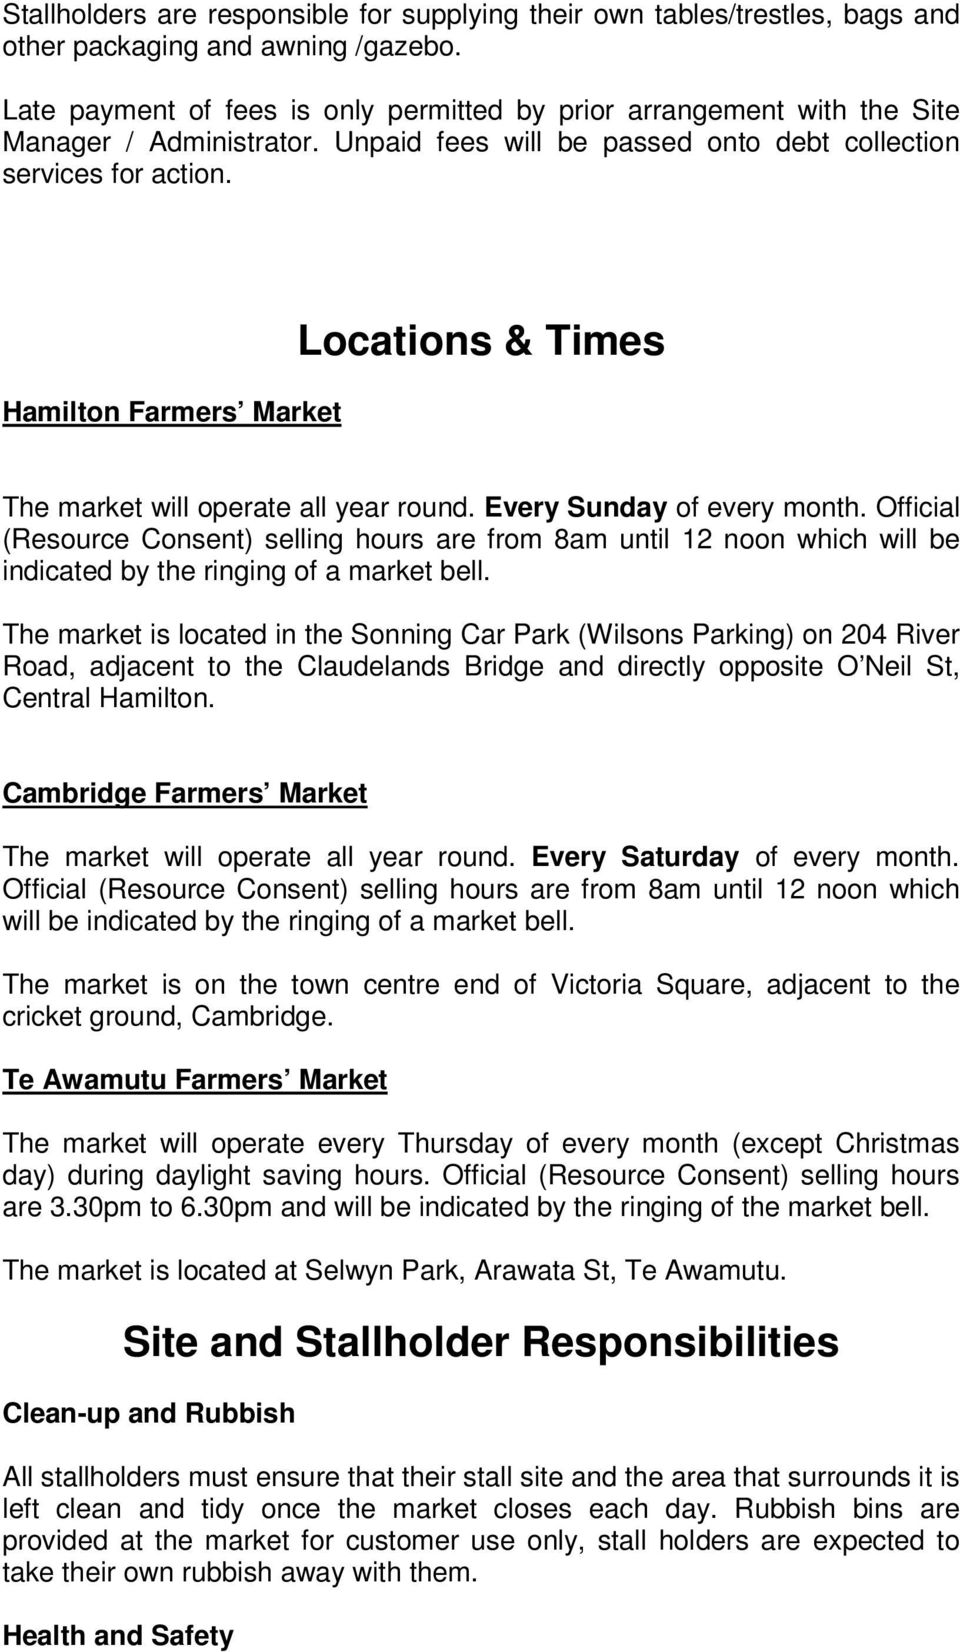 Hamilton Farmers Market Locations & Times The market will operate all year round. Every Sunday of every month.